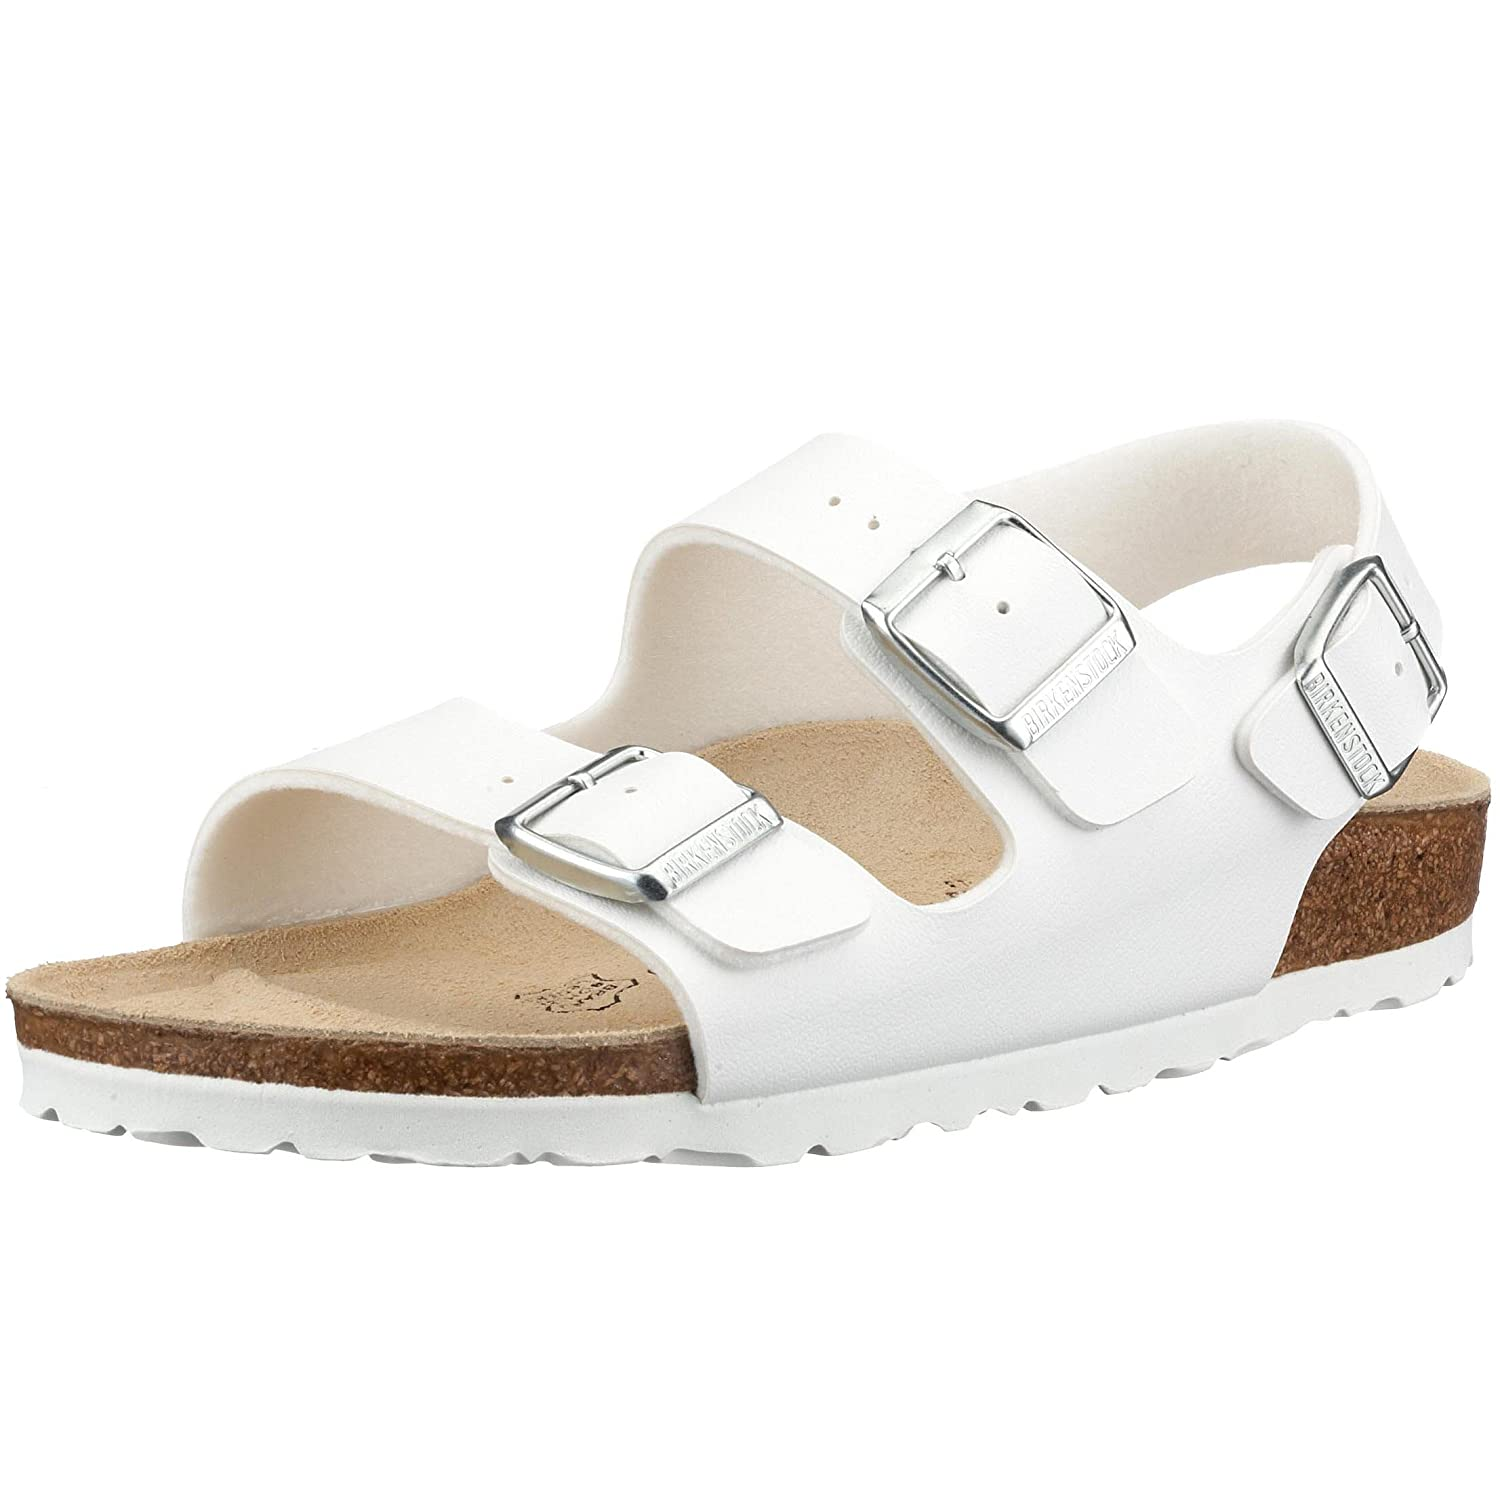 d0bd19bc1d9b Birkenstock Milano Womens White Birko-Flor Sandals 37 EU (6-6.5 R US  Women)  Buy Online at Low Prices in India - Amazon.in